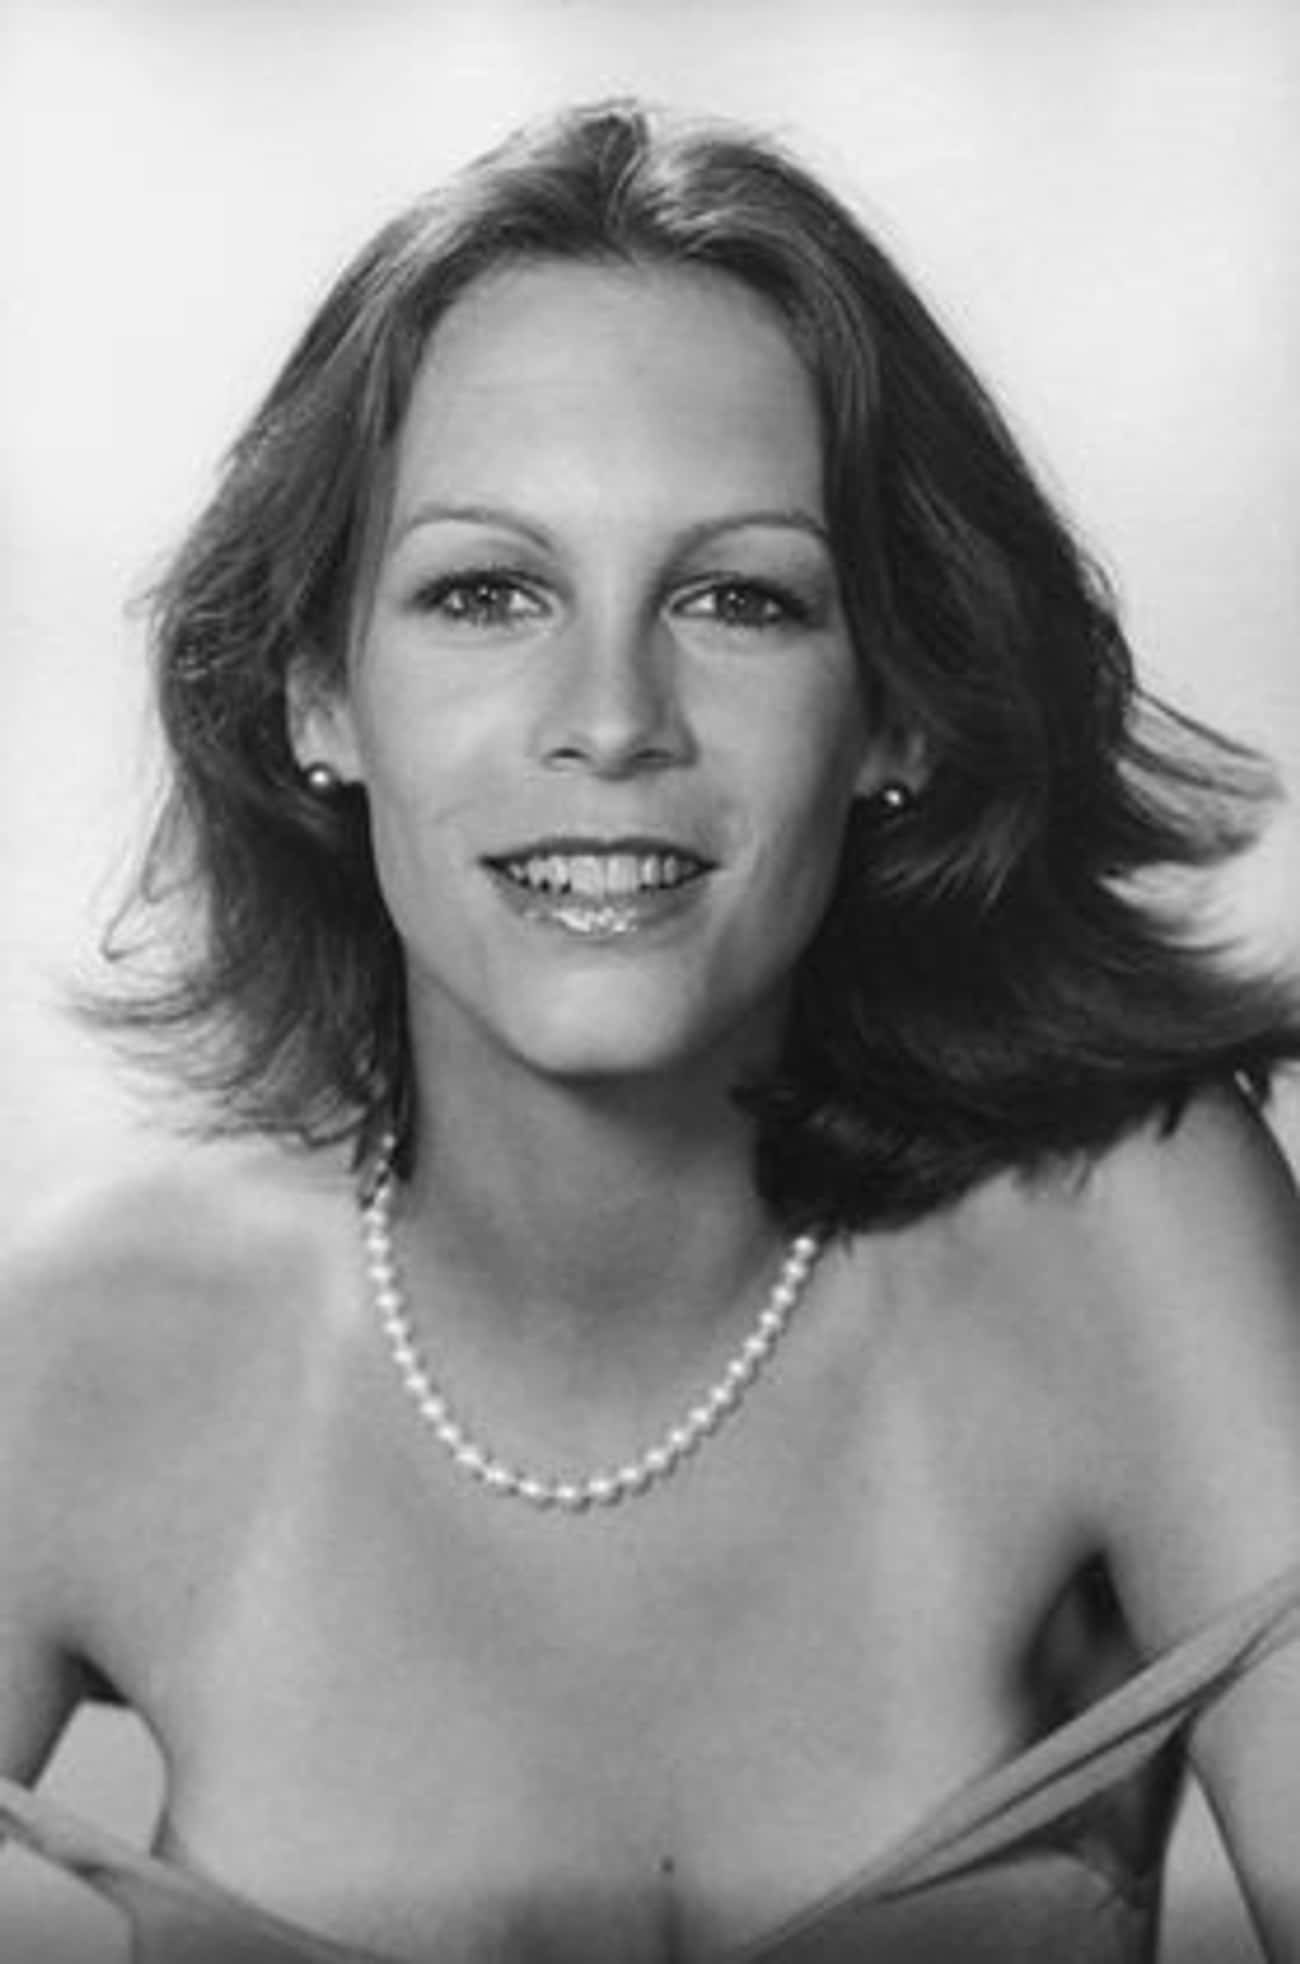 Jamie With A Pearl Necklace is listed (or ranked) 3 on the list Take A Trip Down Memory Lane With These Pictures Of Young Jamie Lee Curtis